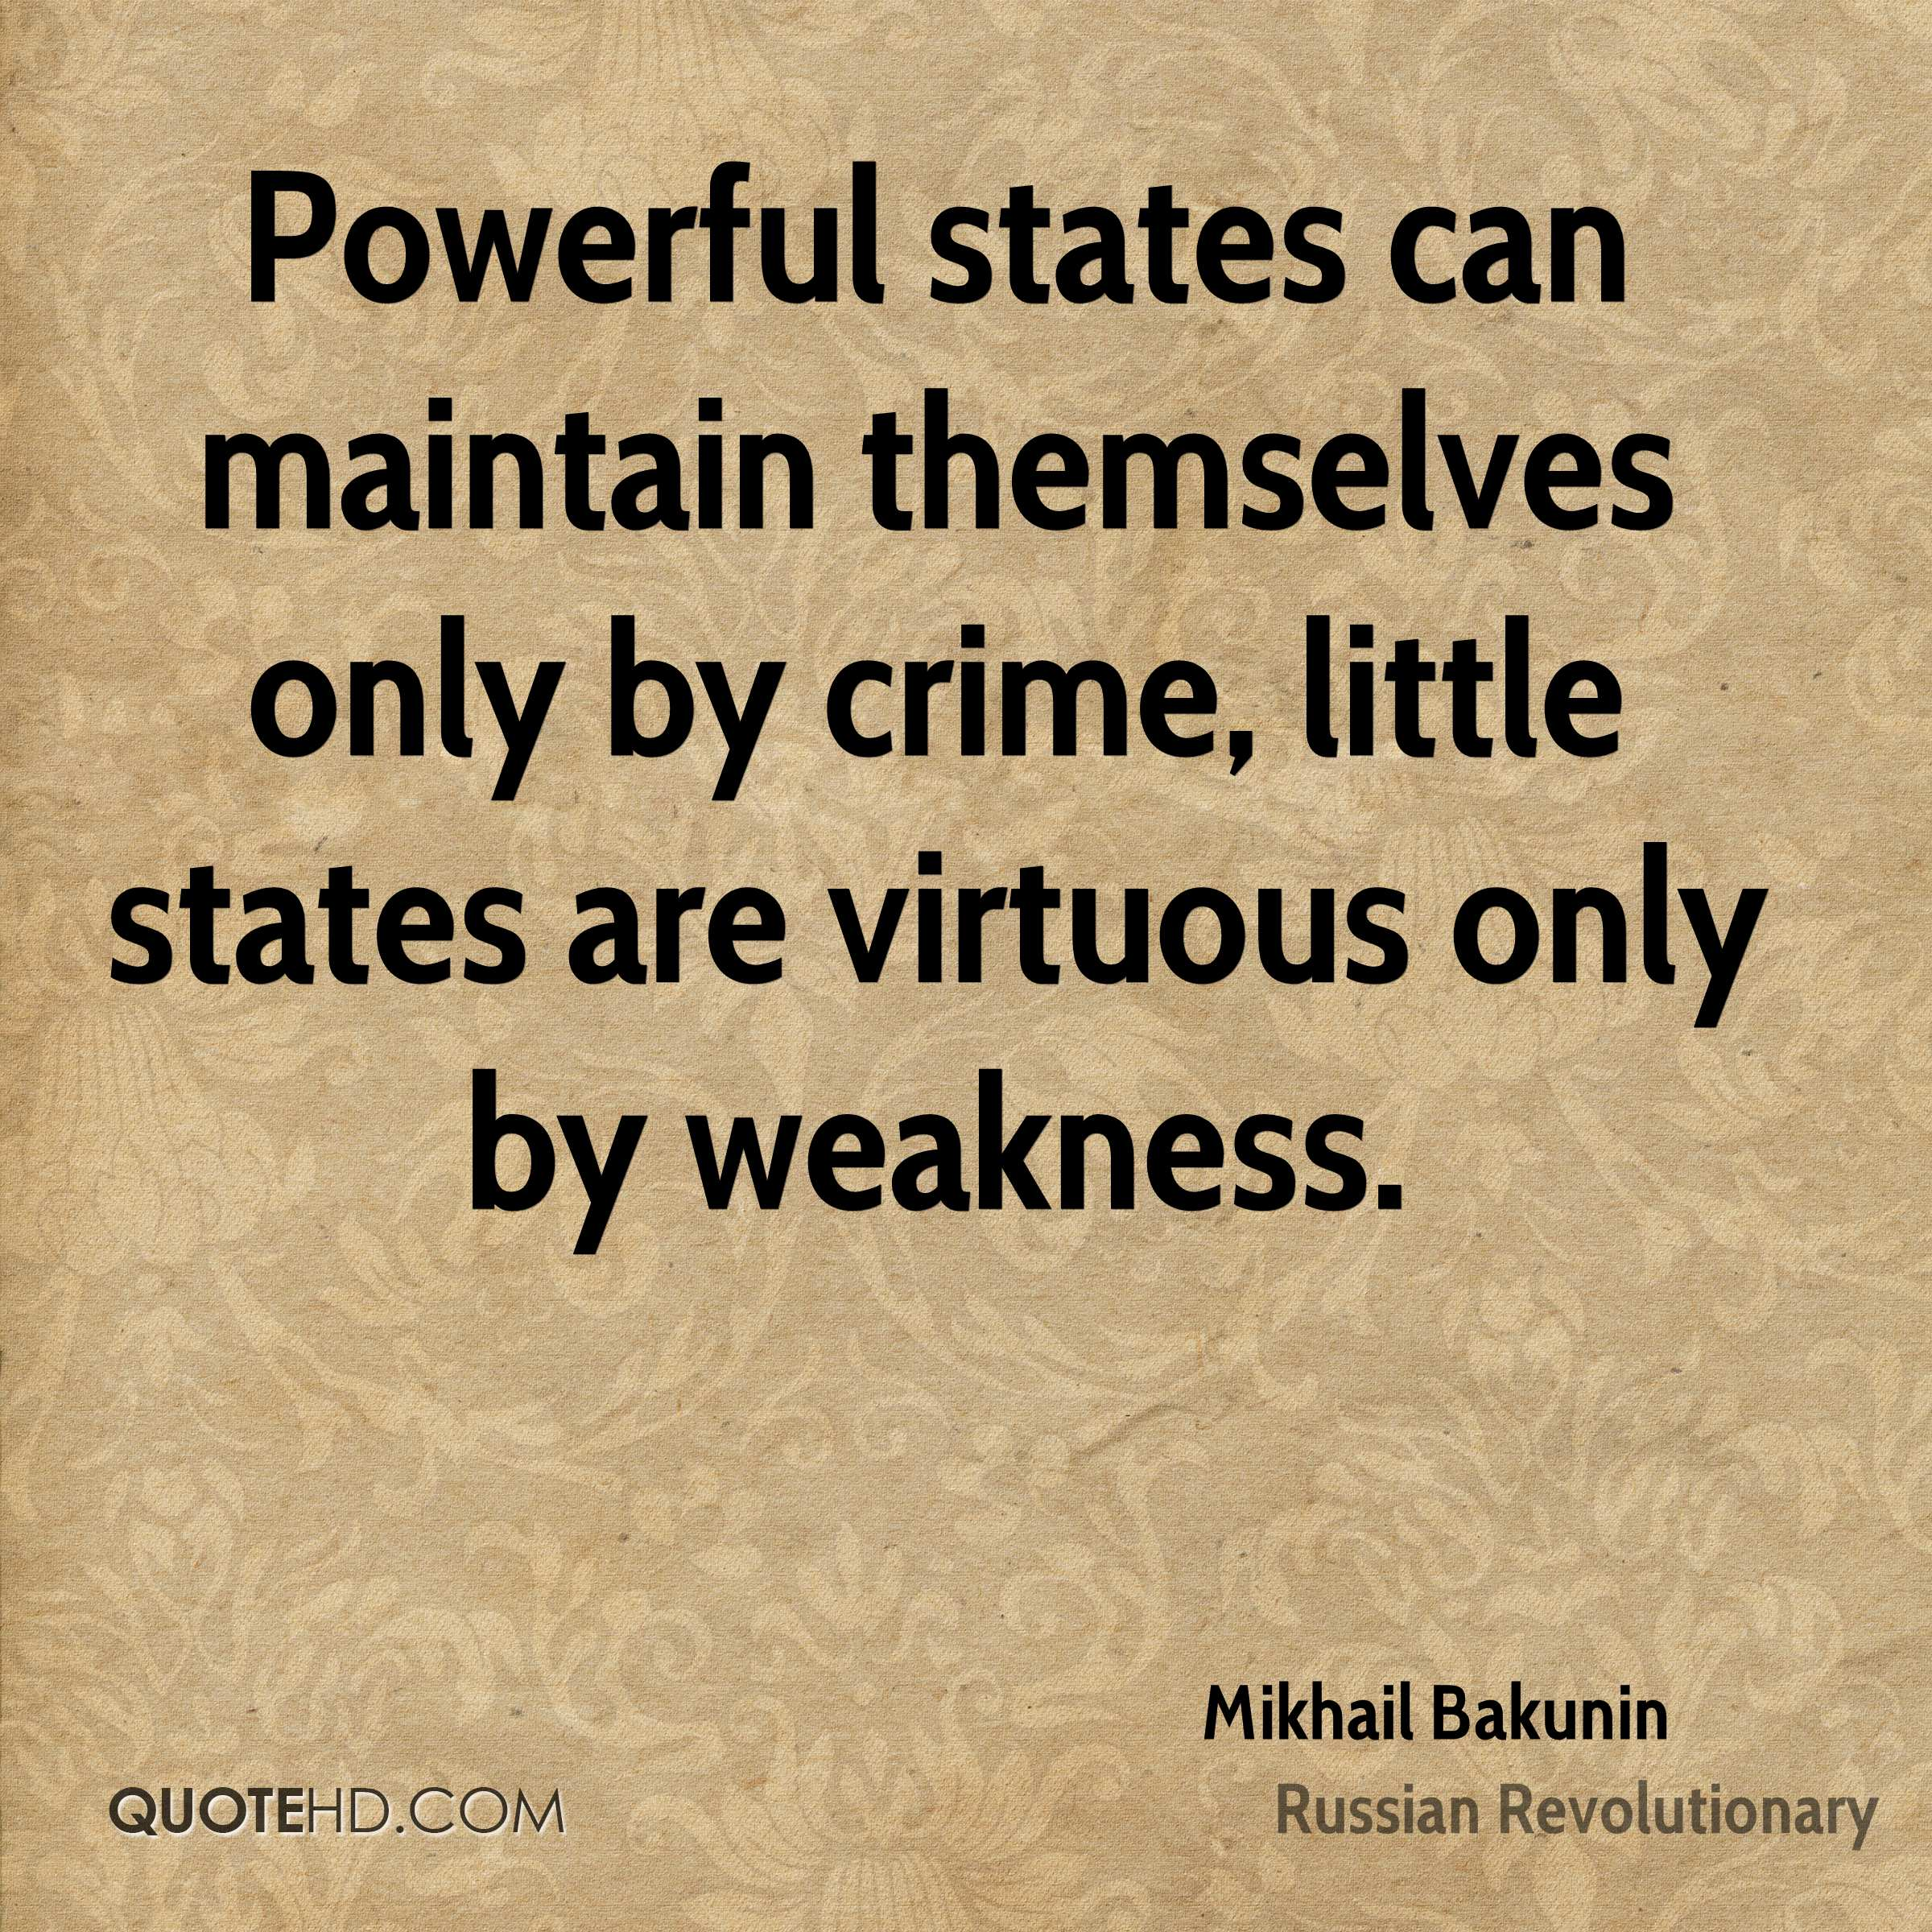 Powerful states can maintain themselves only by crime, little states are virtuous only by weakness.